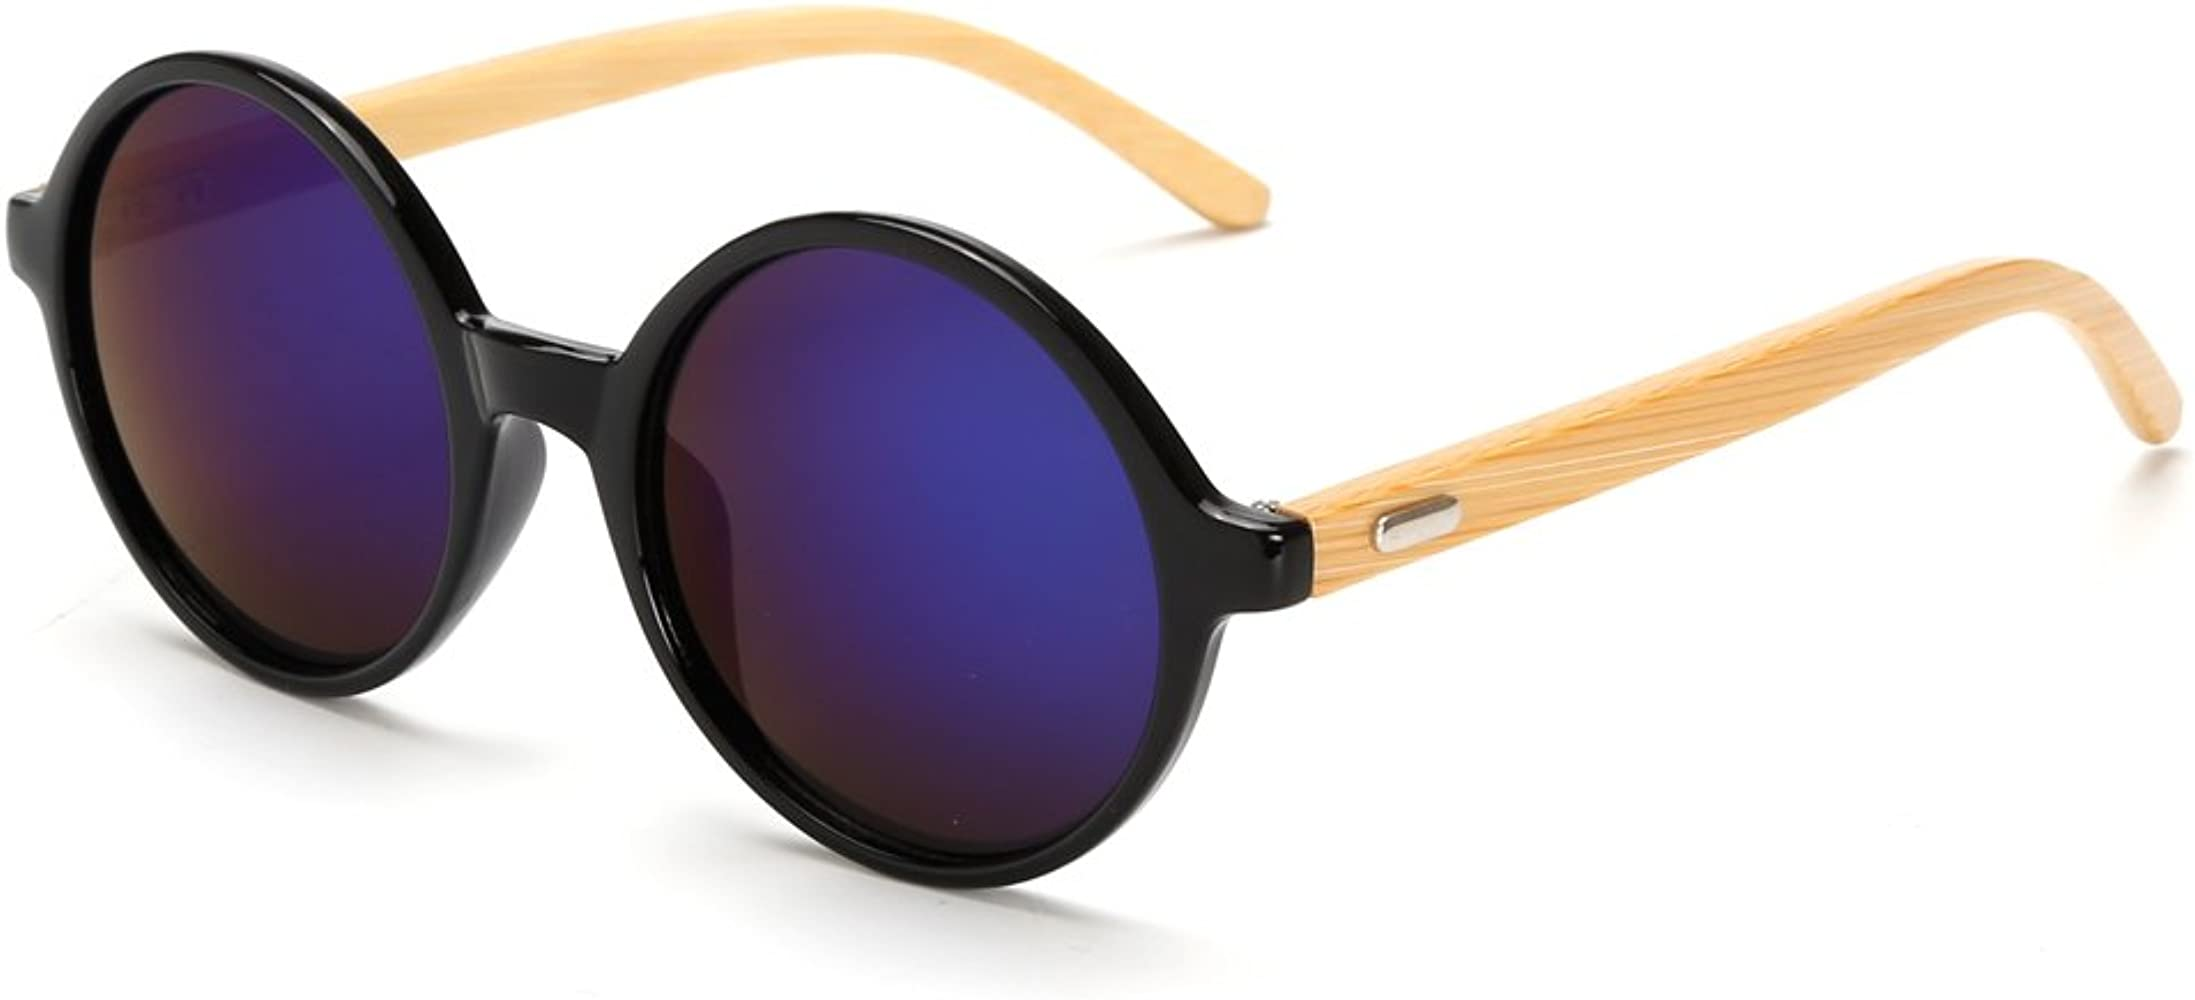 LongKeeper Mens Bamboo Wood Arms Classic Sunglasses